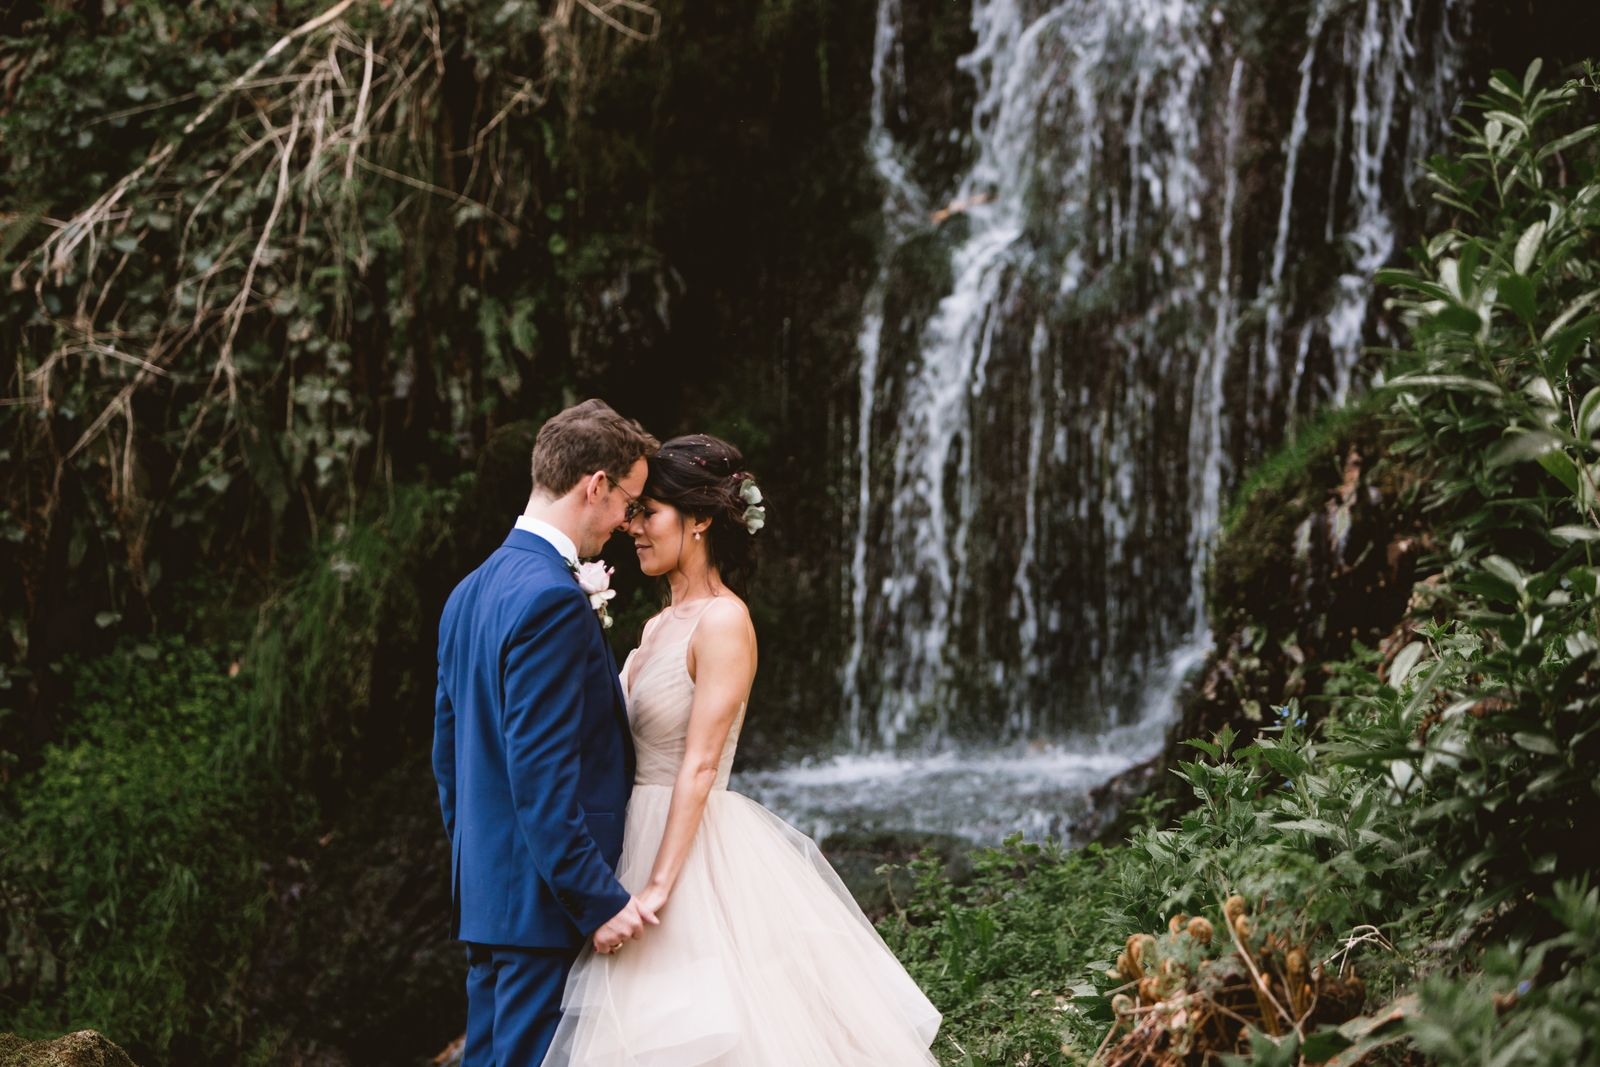 Bride and groom pose together beside the waterfall at Hestercombe Gardens